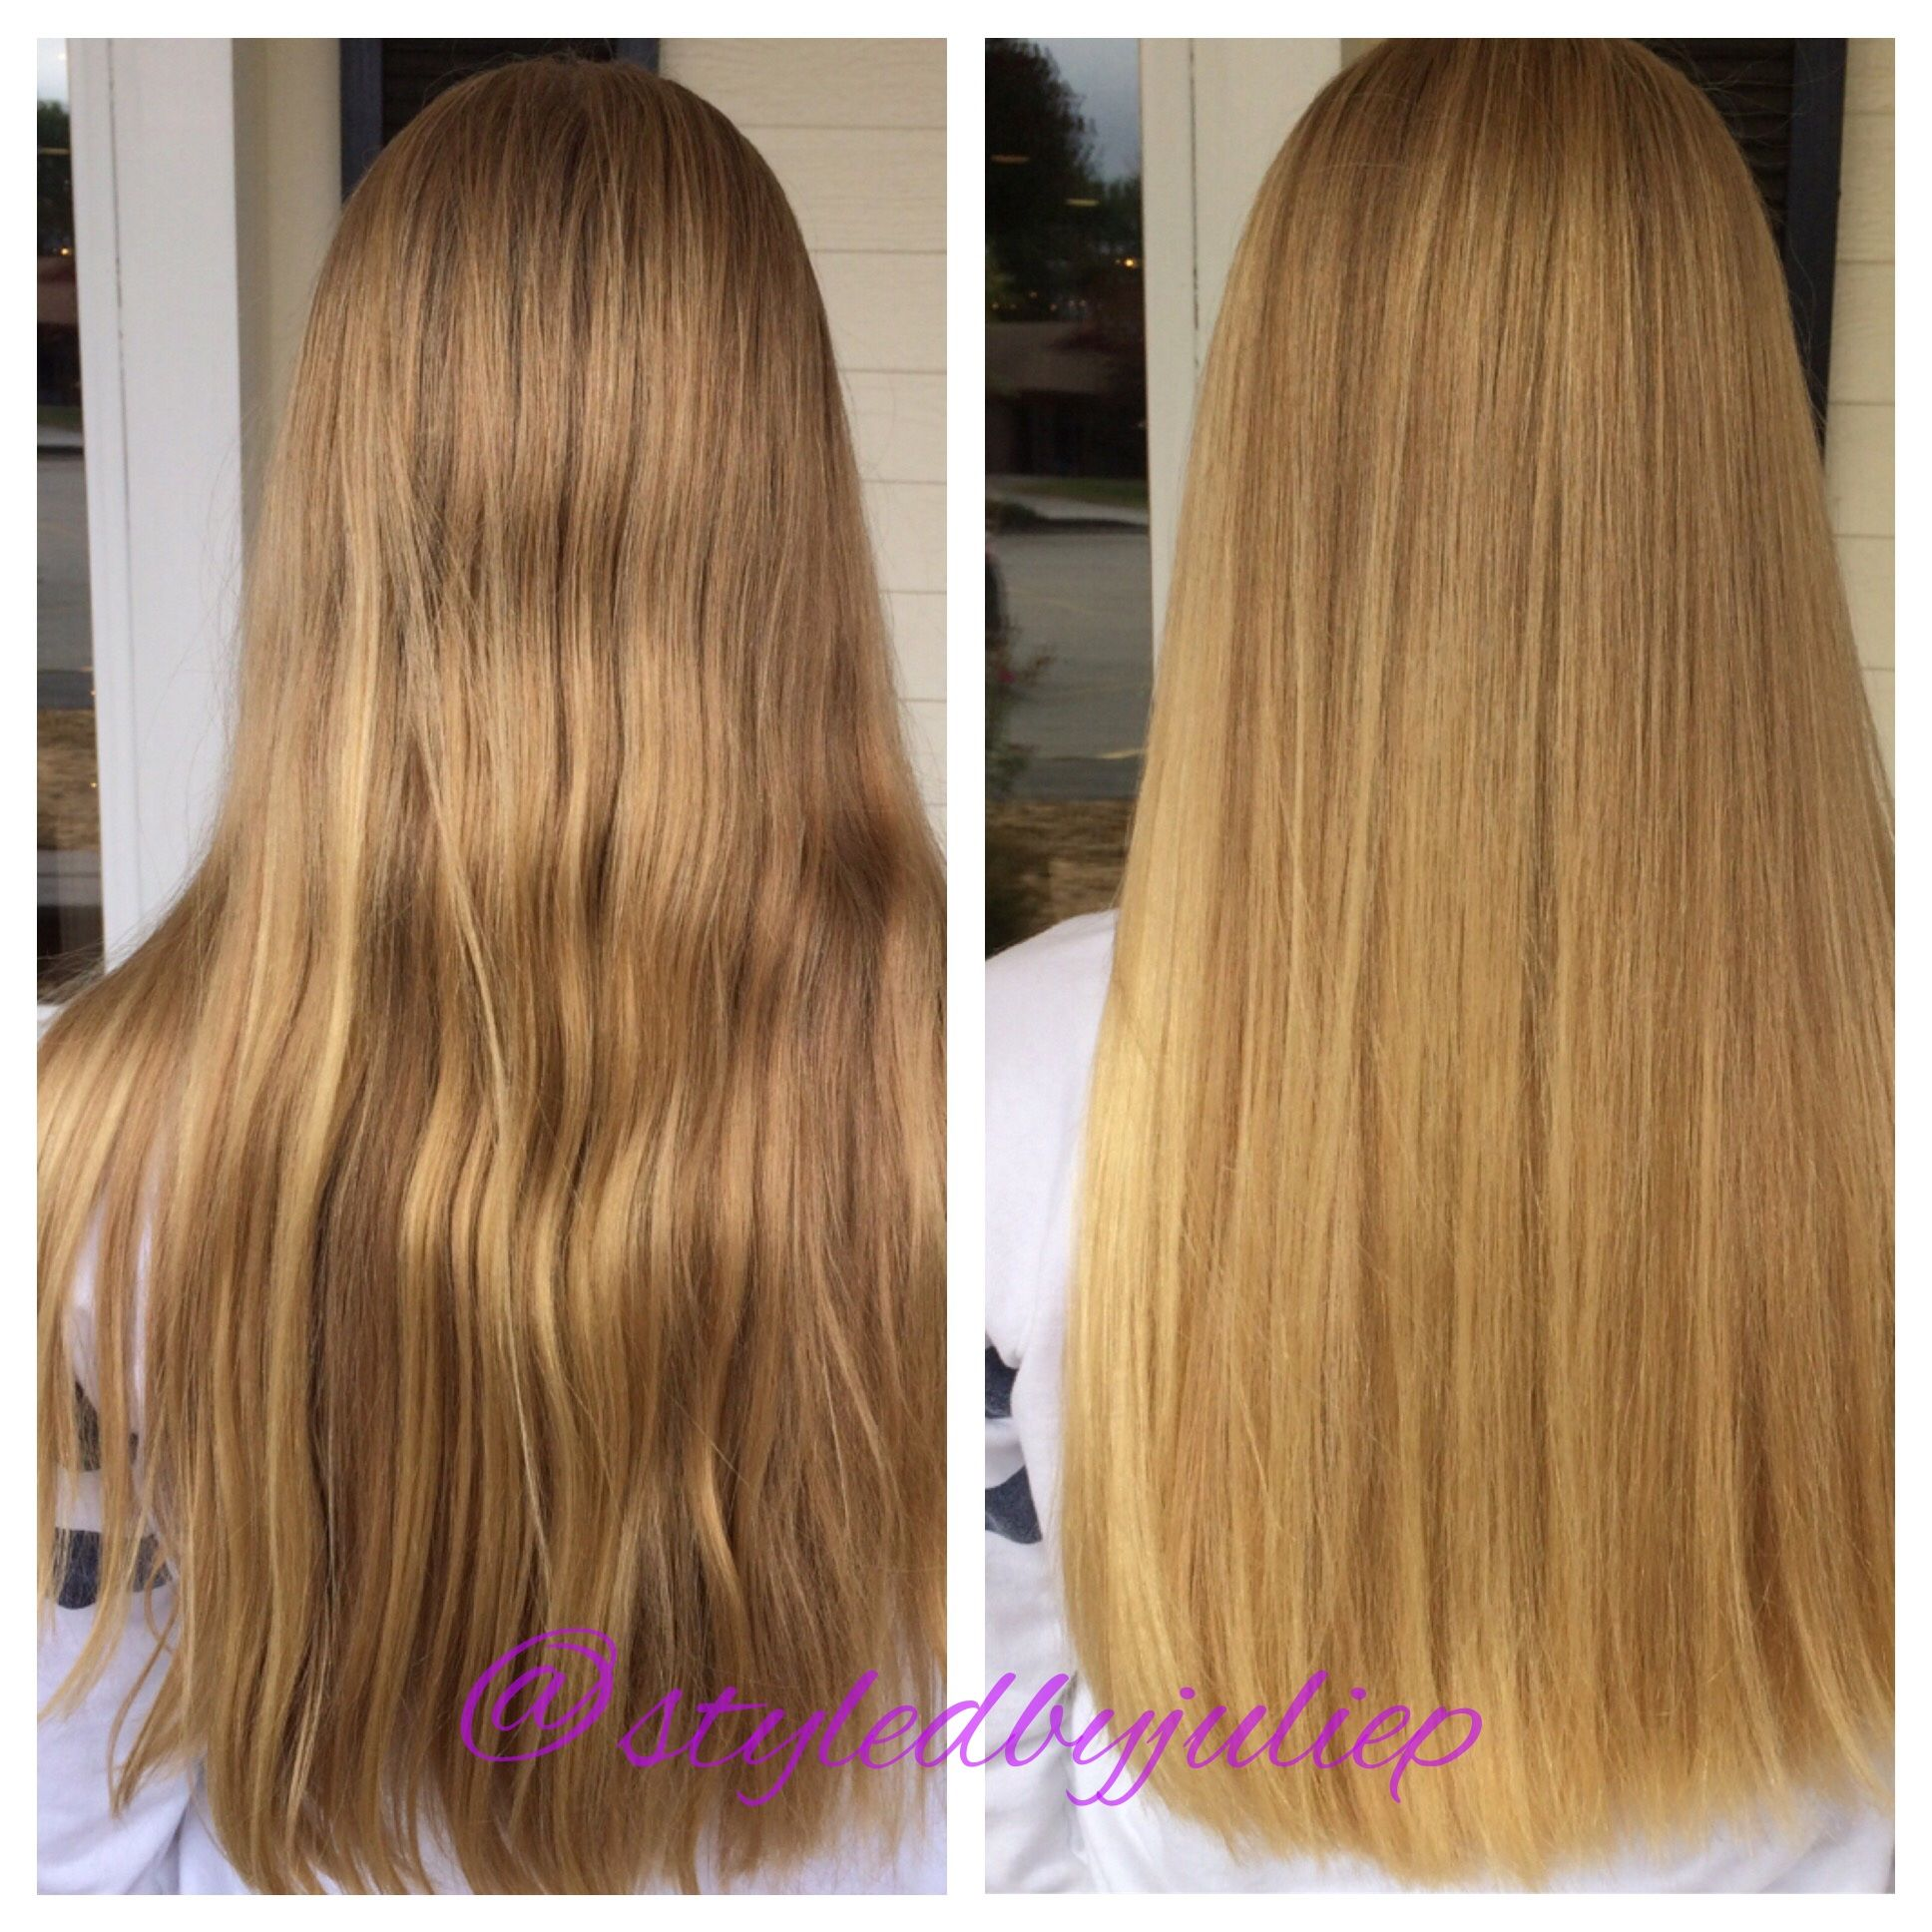 9f0d160c2a877cd1e9b83f97ffb140db - How To Get Rid Of Colour Build Up In Hair